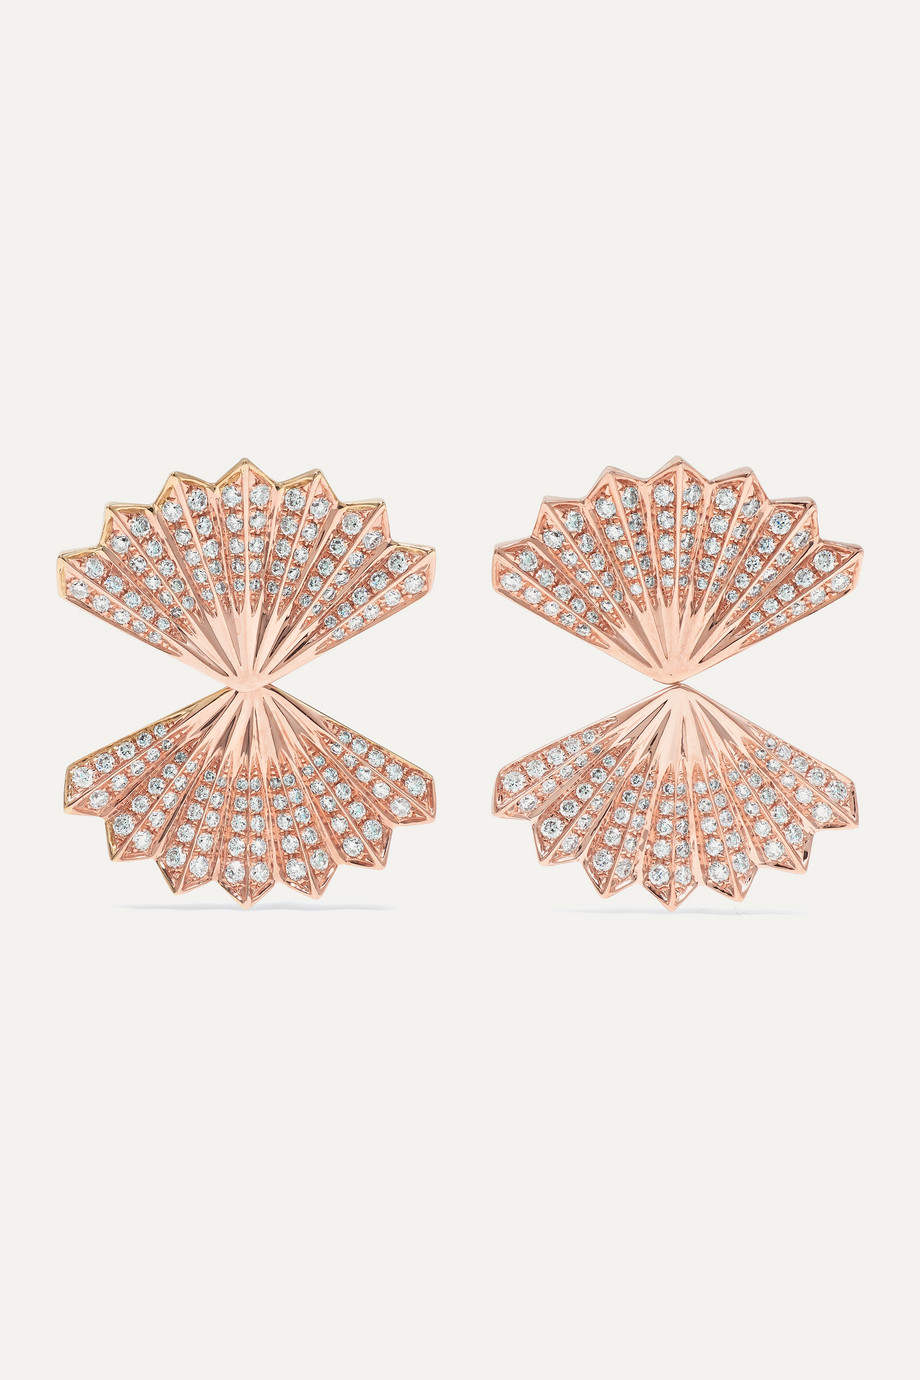 Anita Ko Double Fan 18-karat rose gold diamond earrings